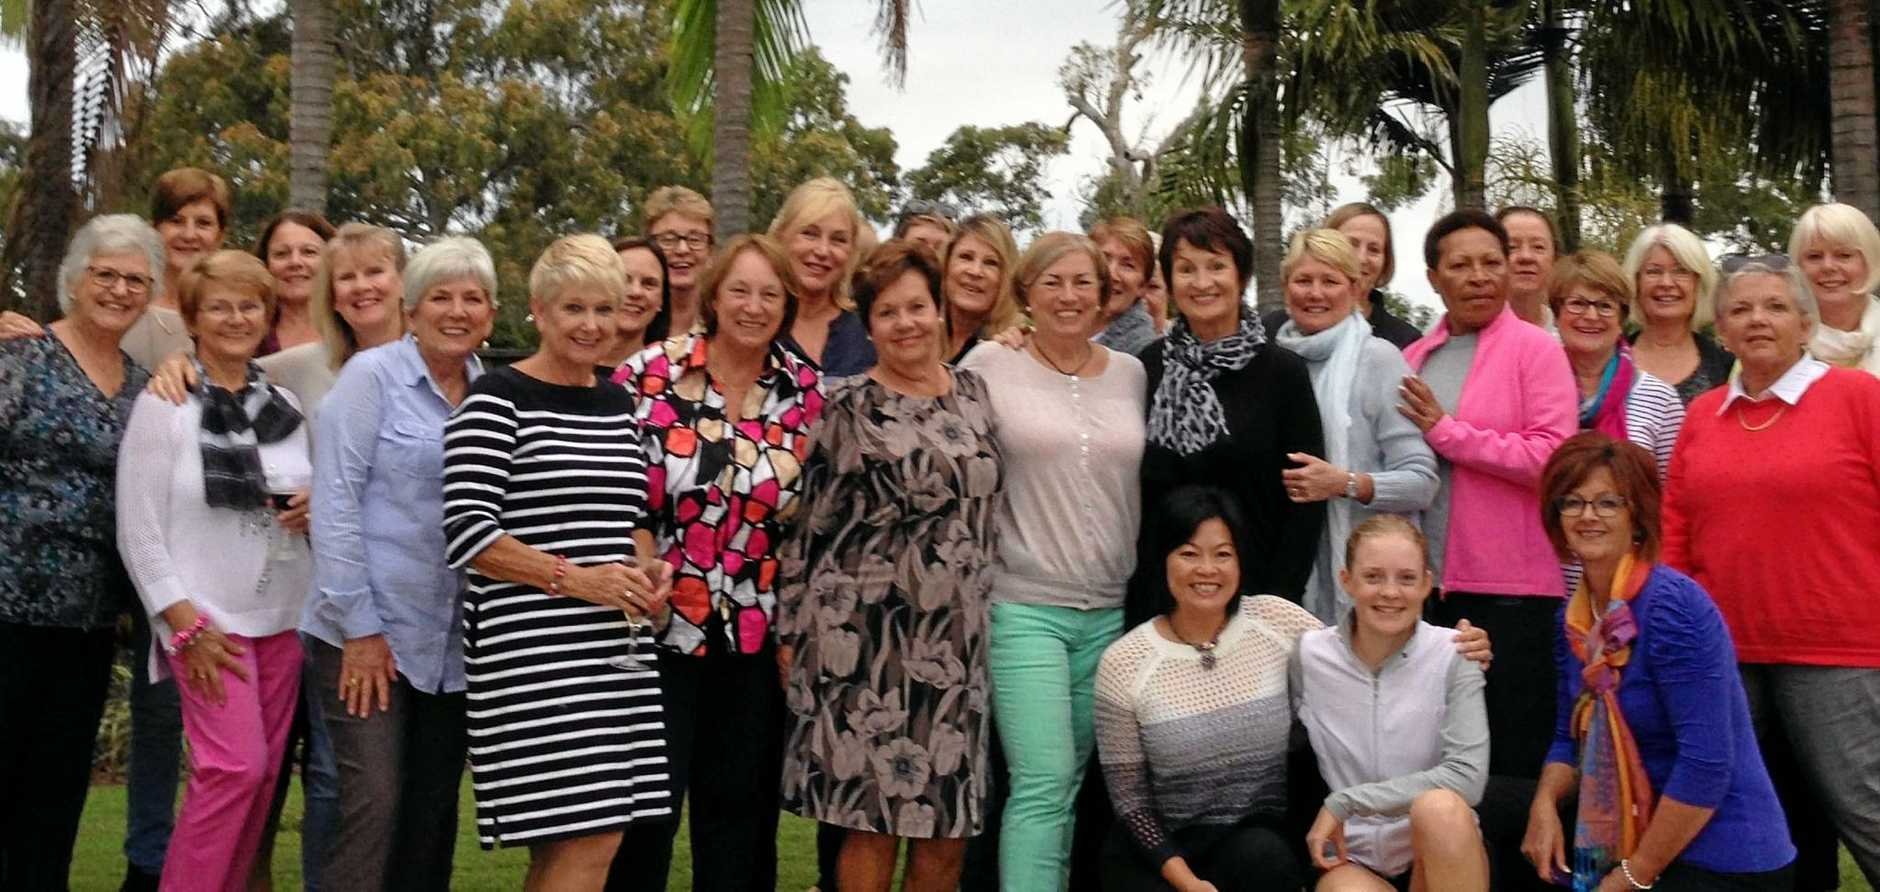 The ladies of the now closed Peregian Springs Golf Club want their way of life back and playing.